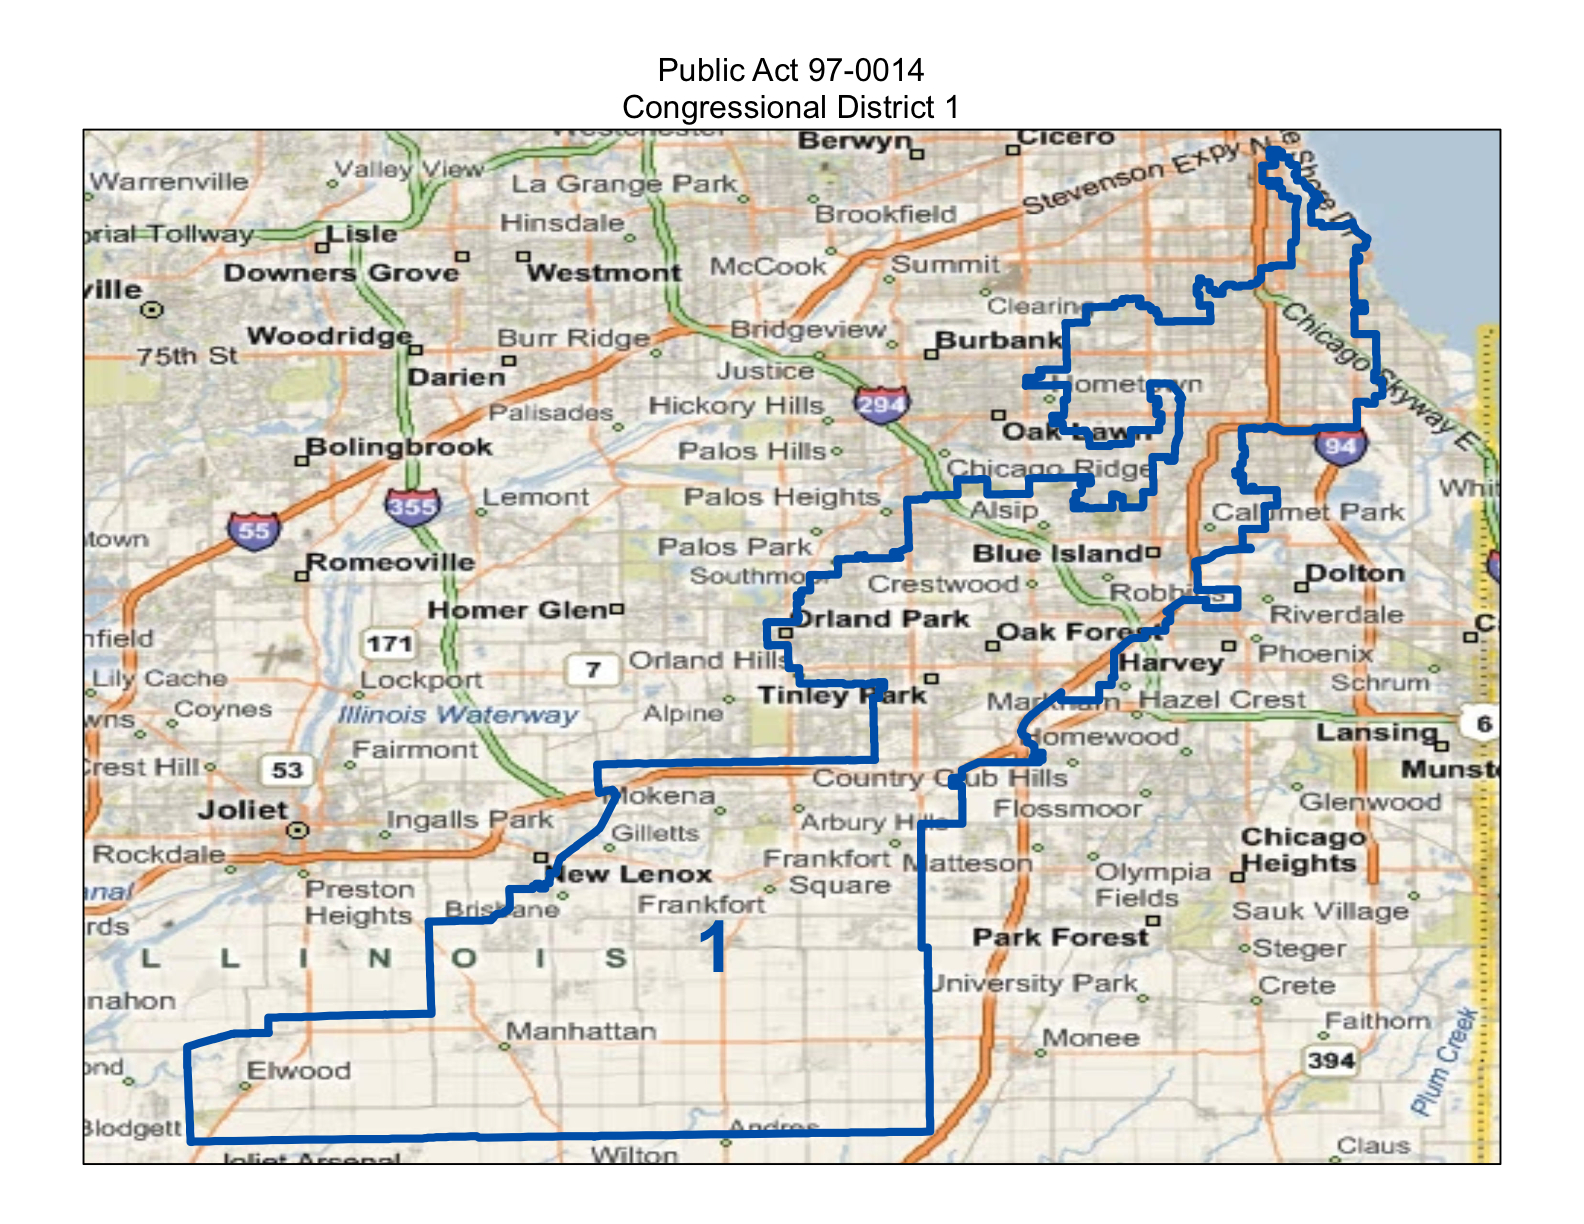 Will County Politics Maps Of Illinois Congressional Districts - Map of illinois us house of representatives districts